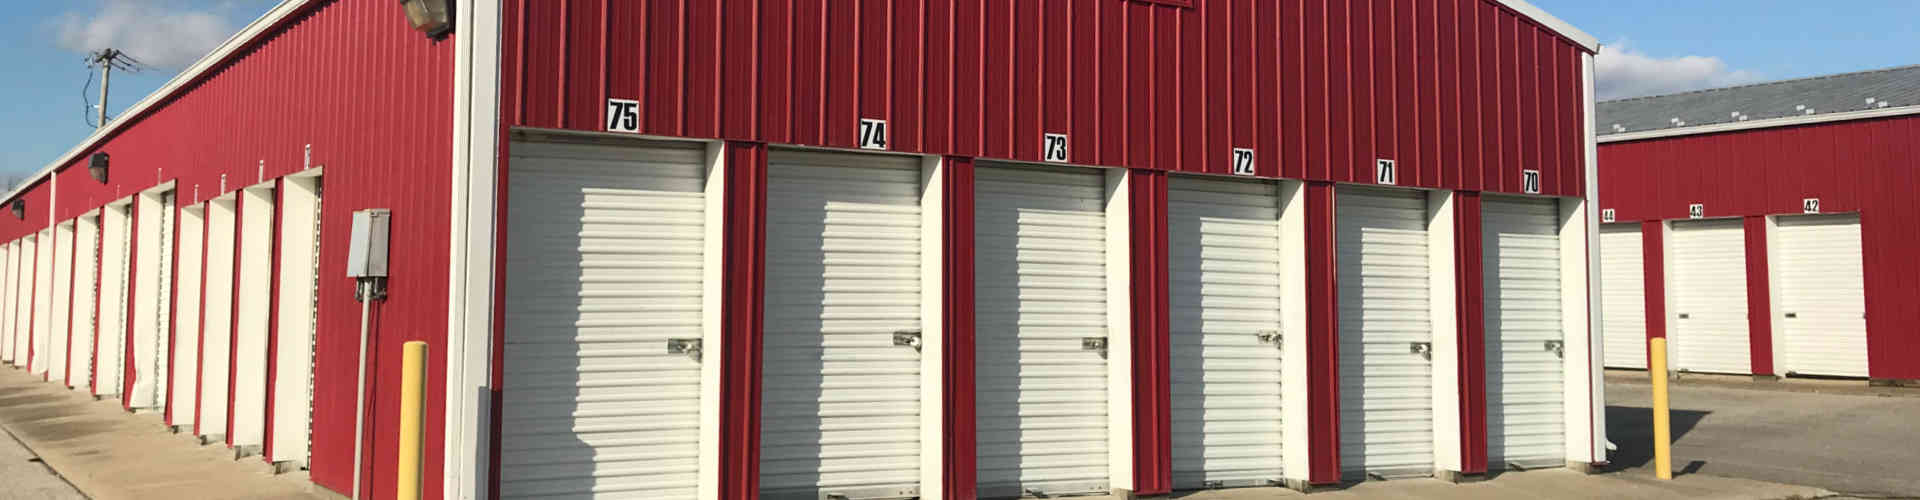 Self storage rentals in Cincinnati, Maysville KY, Aberdeen, Manchester OH, Georgetown, West Union